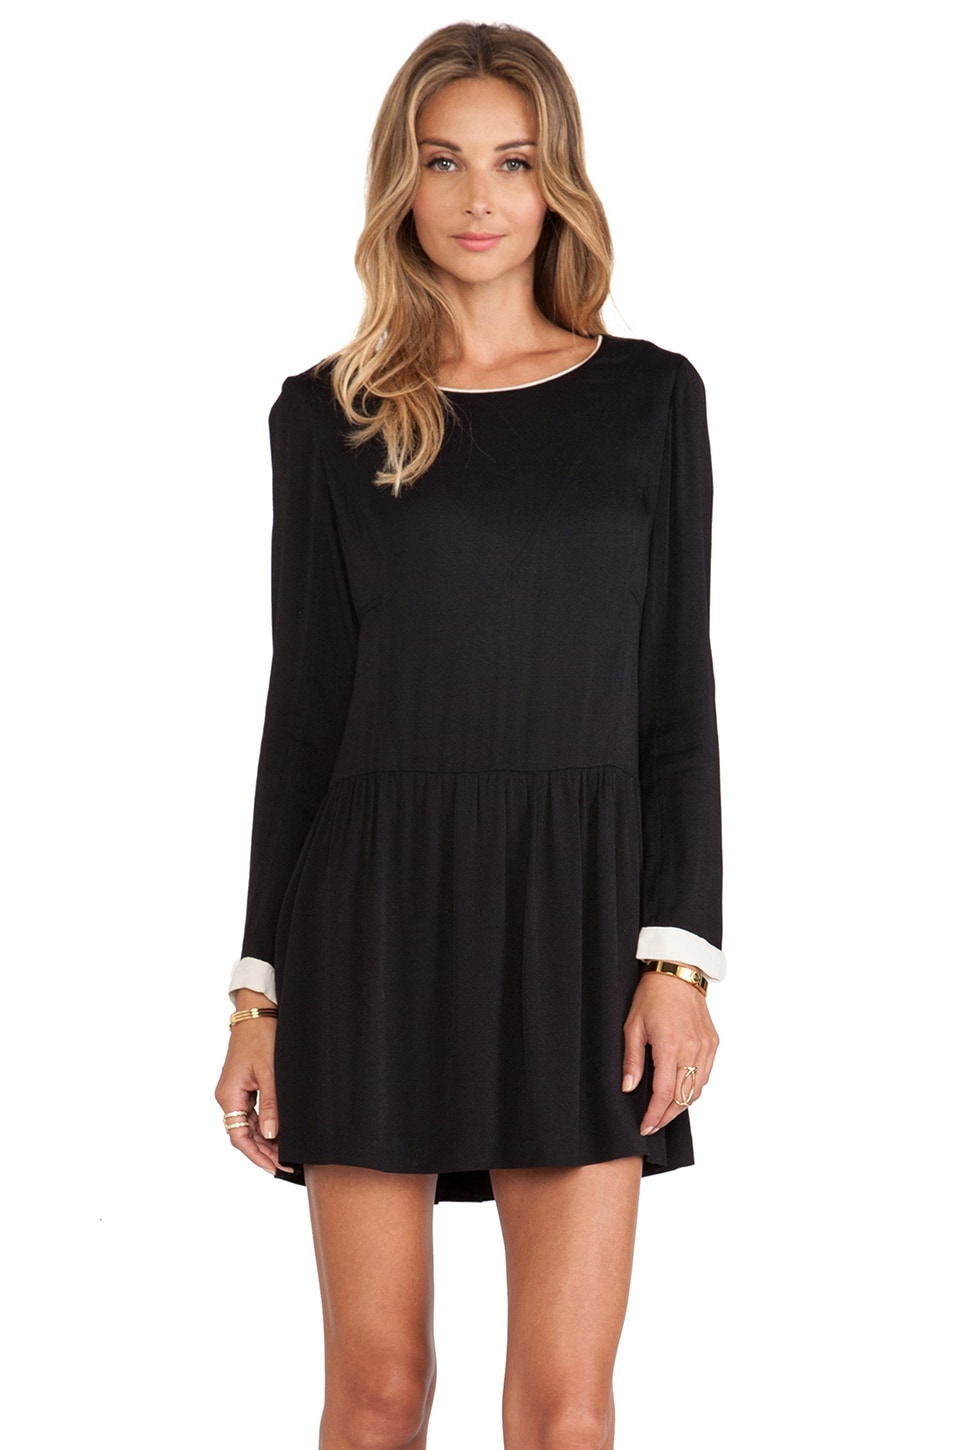 harlyn The Etienne Mini Dress in Black